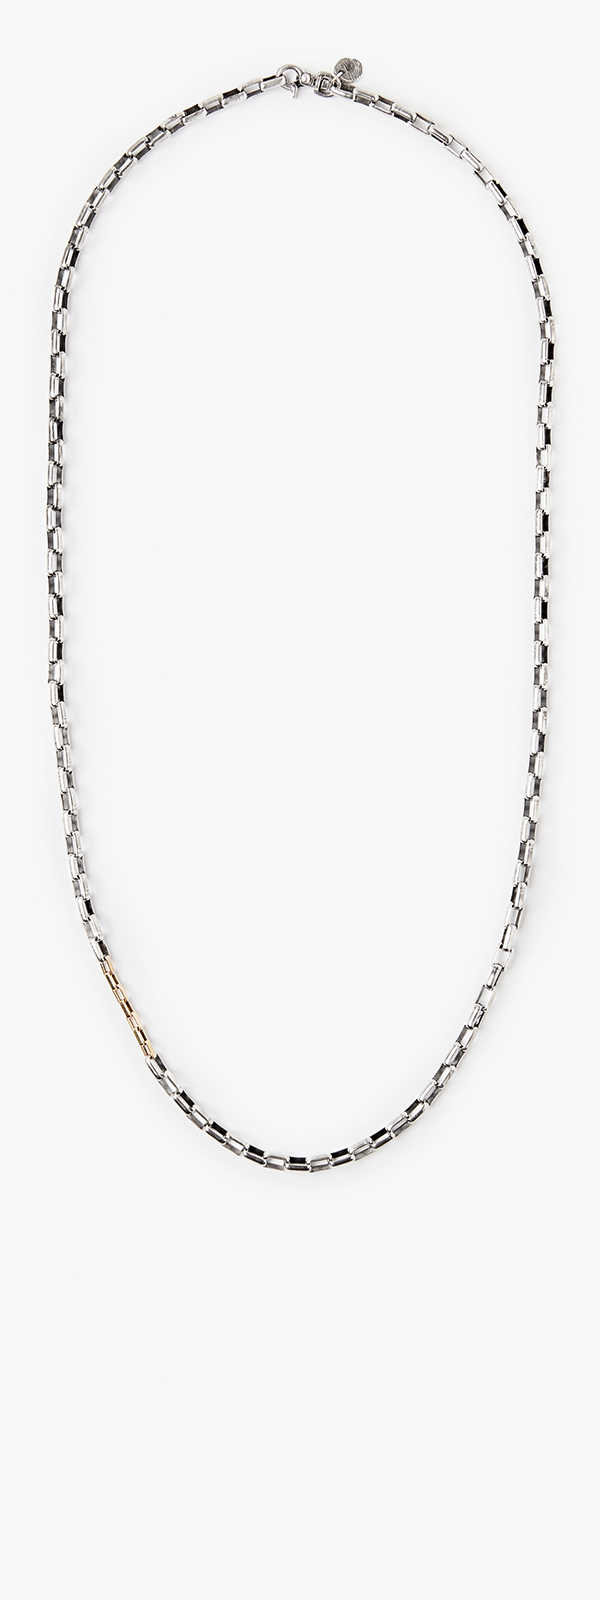 Image of Mixed Metal Necklace 101